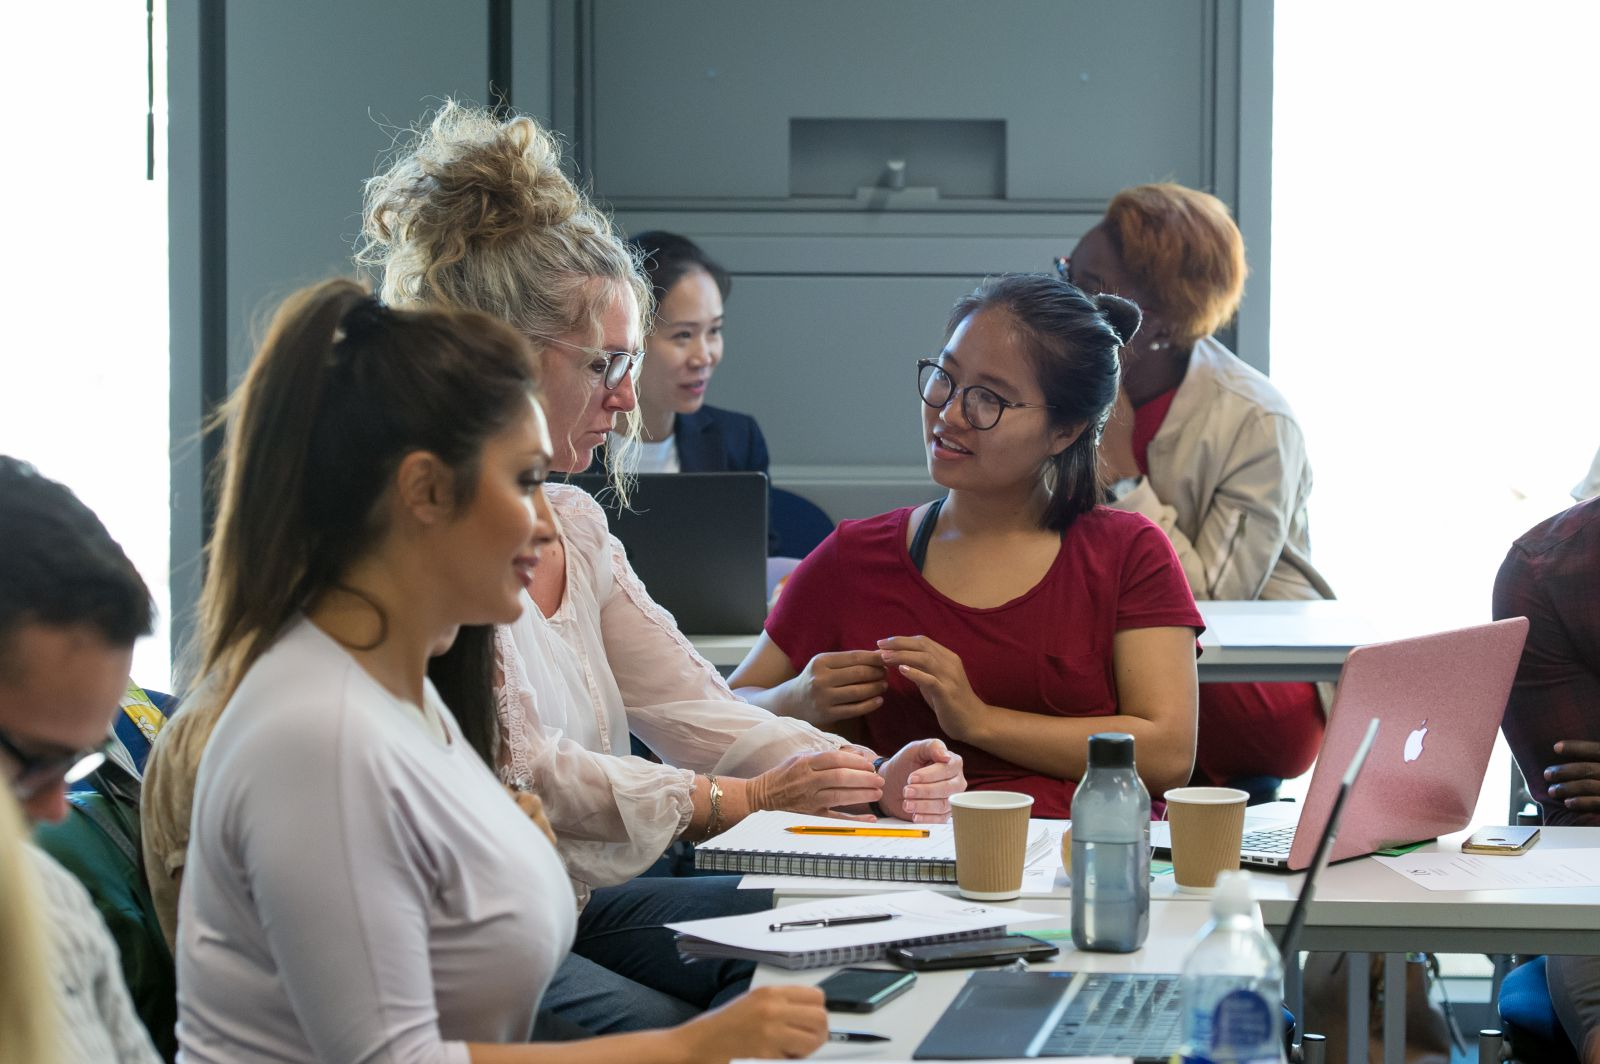 Undergraduate students work together during a seminar in the Jubilee Building, home to the University of Sussex Business School